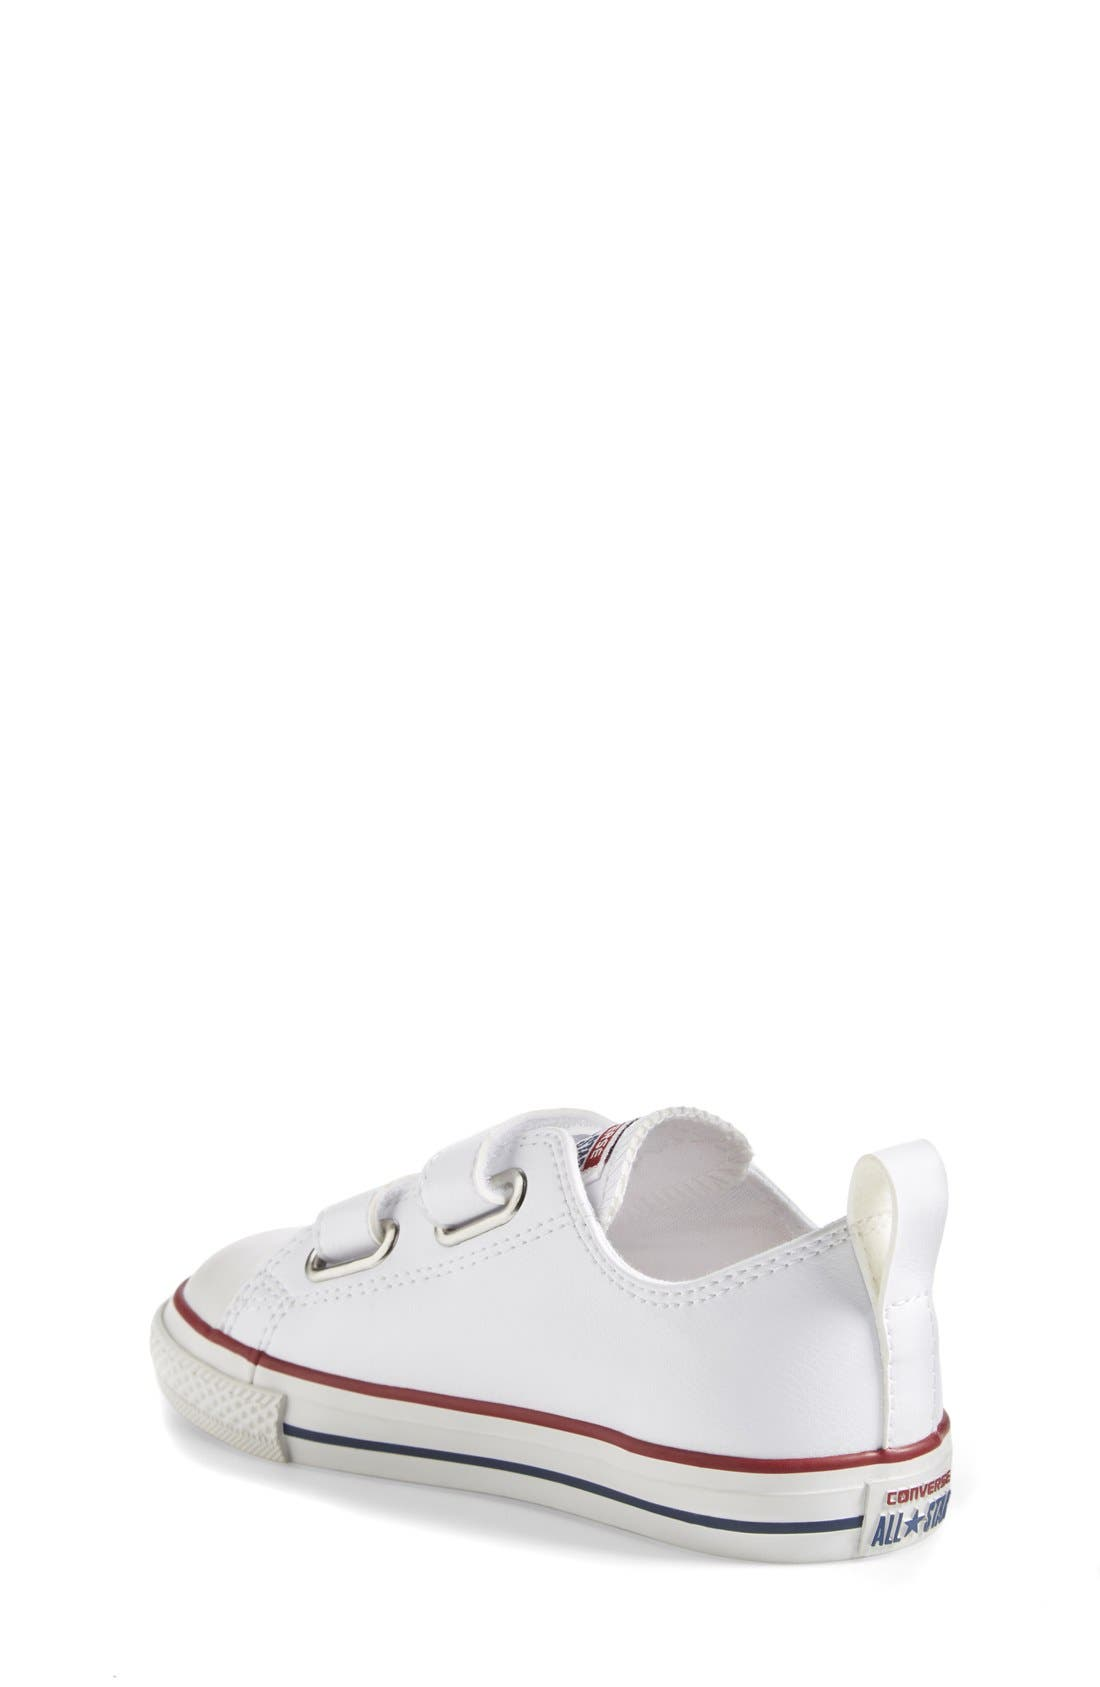 Chuck Taylor<sup>®</sup> All Star<sup>®</sup> 2V Faux Leather Sneaker,                             Alternate thumbnail 2, color,                             WHITE